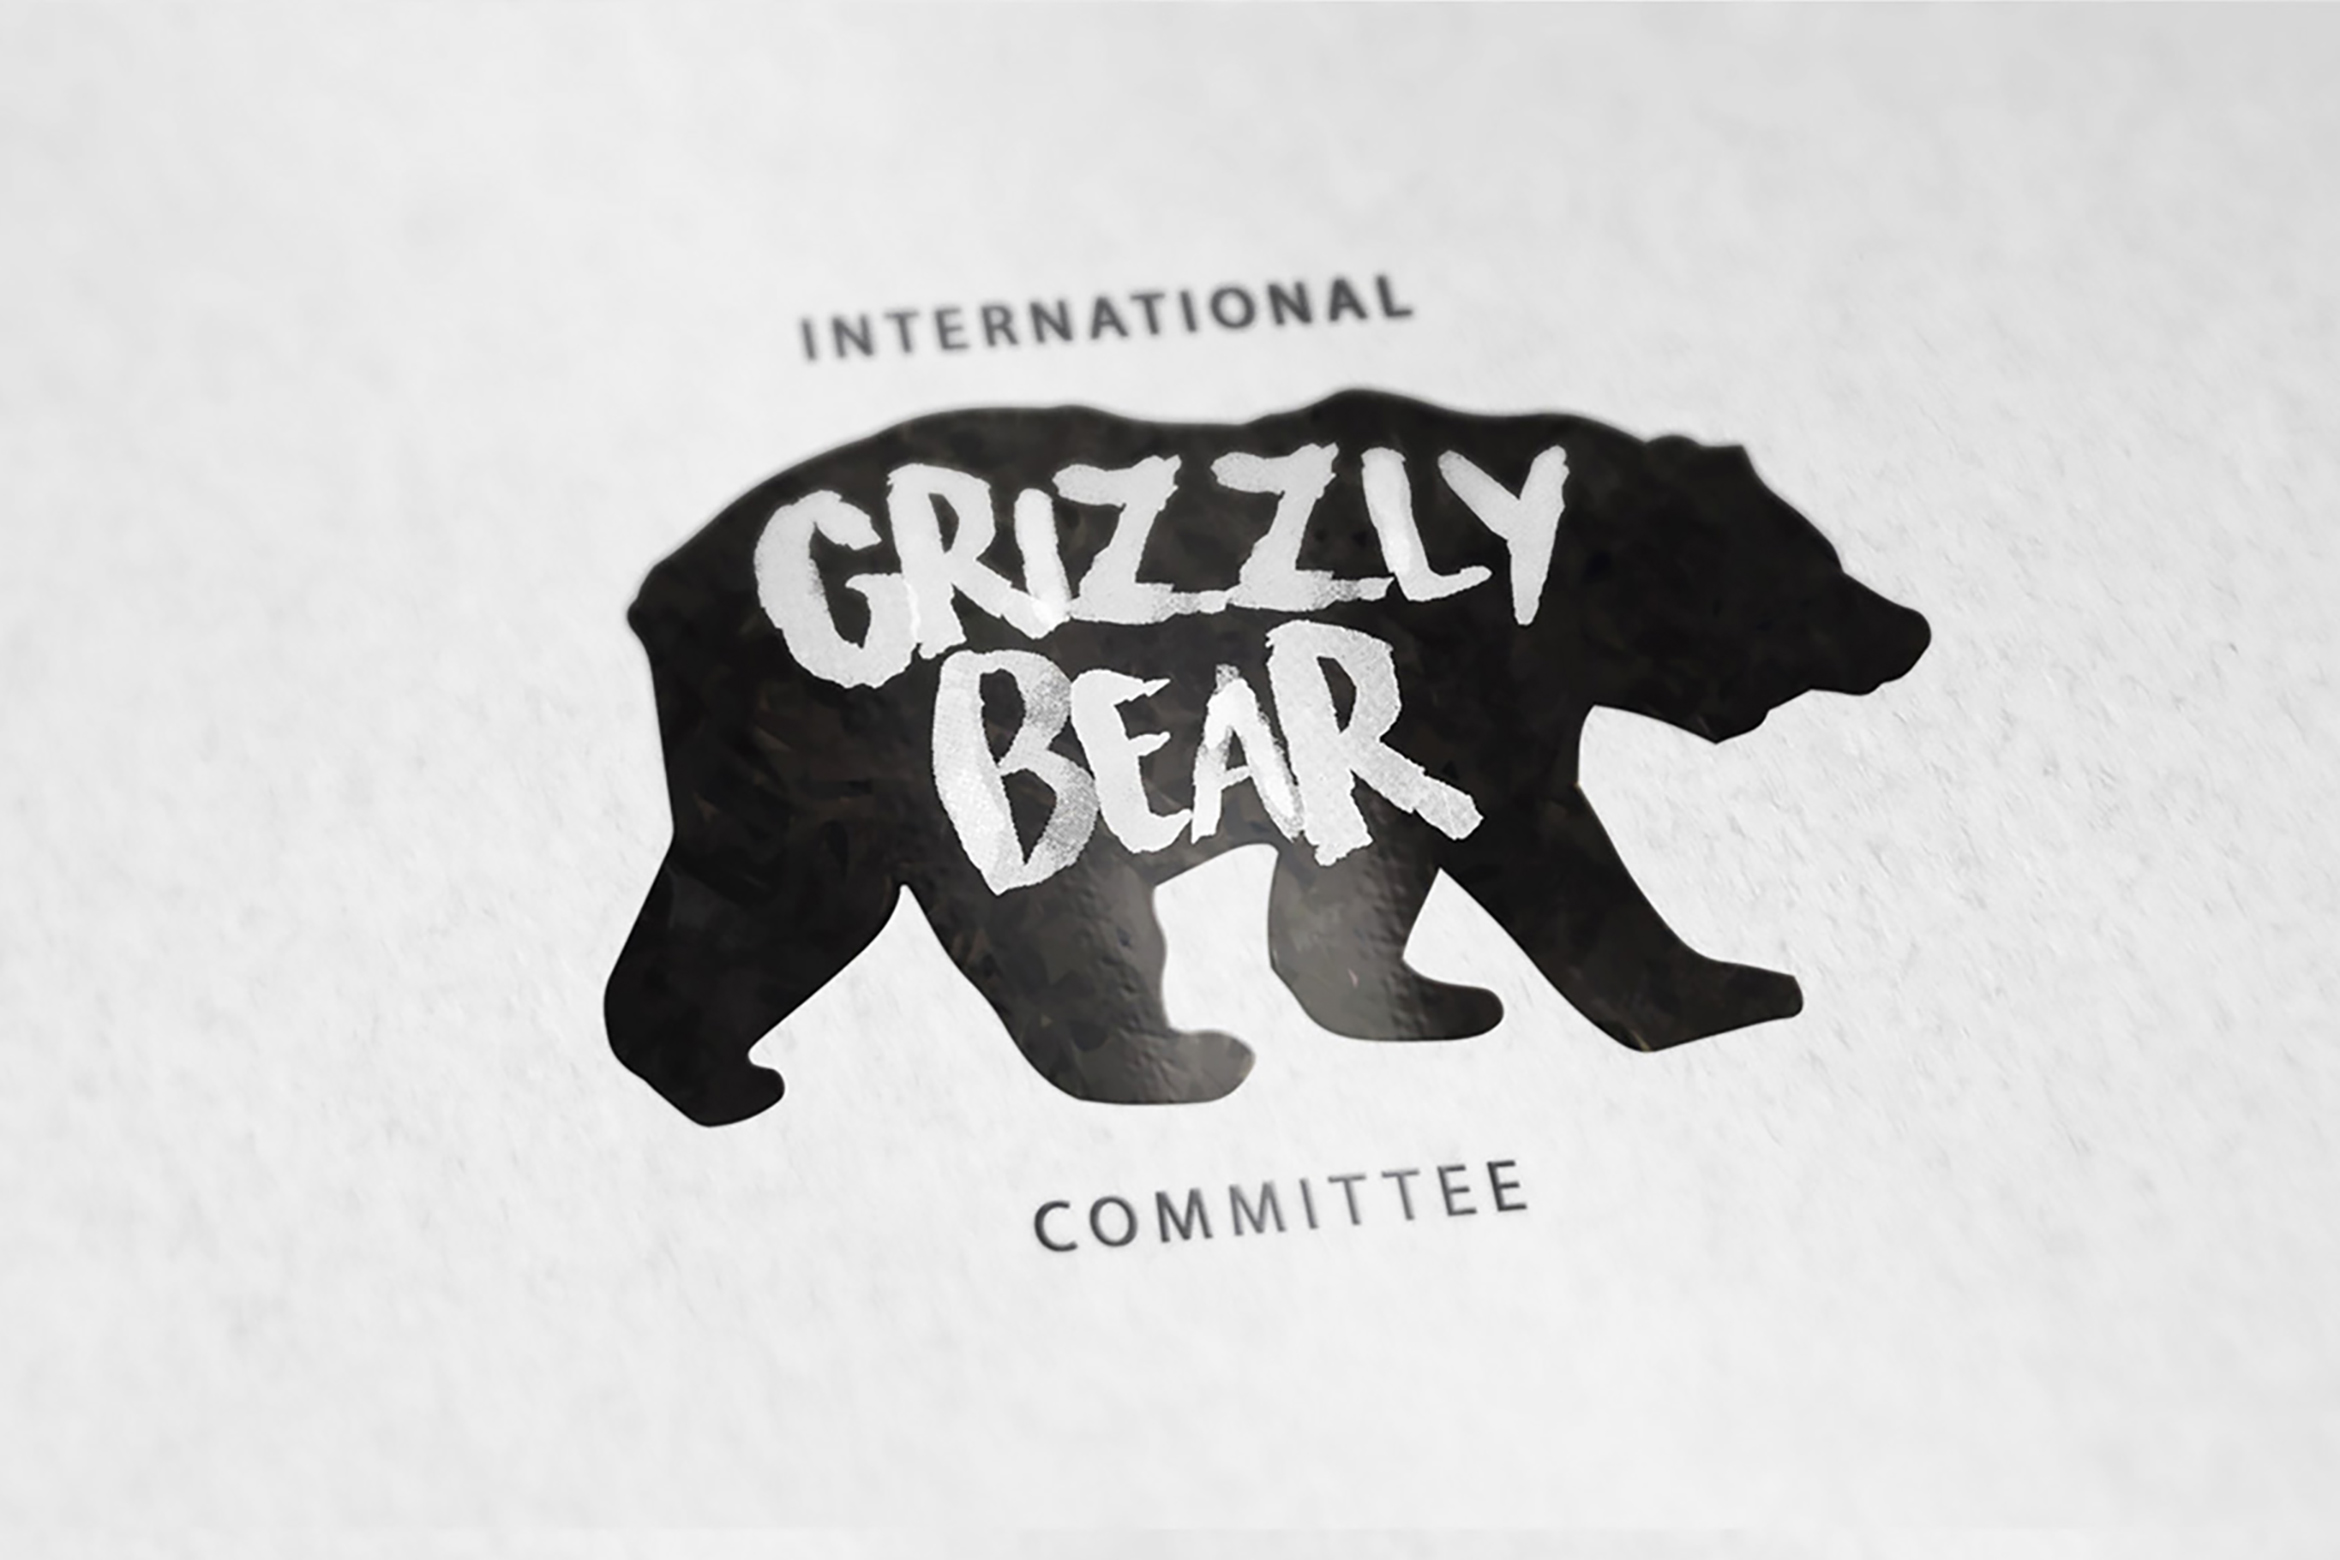 Download Free Grizzly Bear Logo Graphic By Smartdesigns Creative Fabrica for Cricut Explore, Silhouette and other cutting machines.